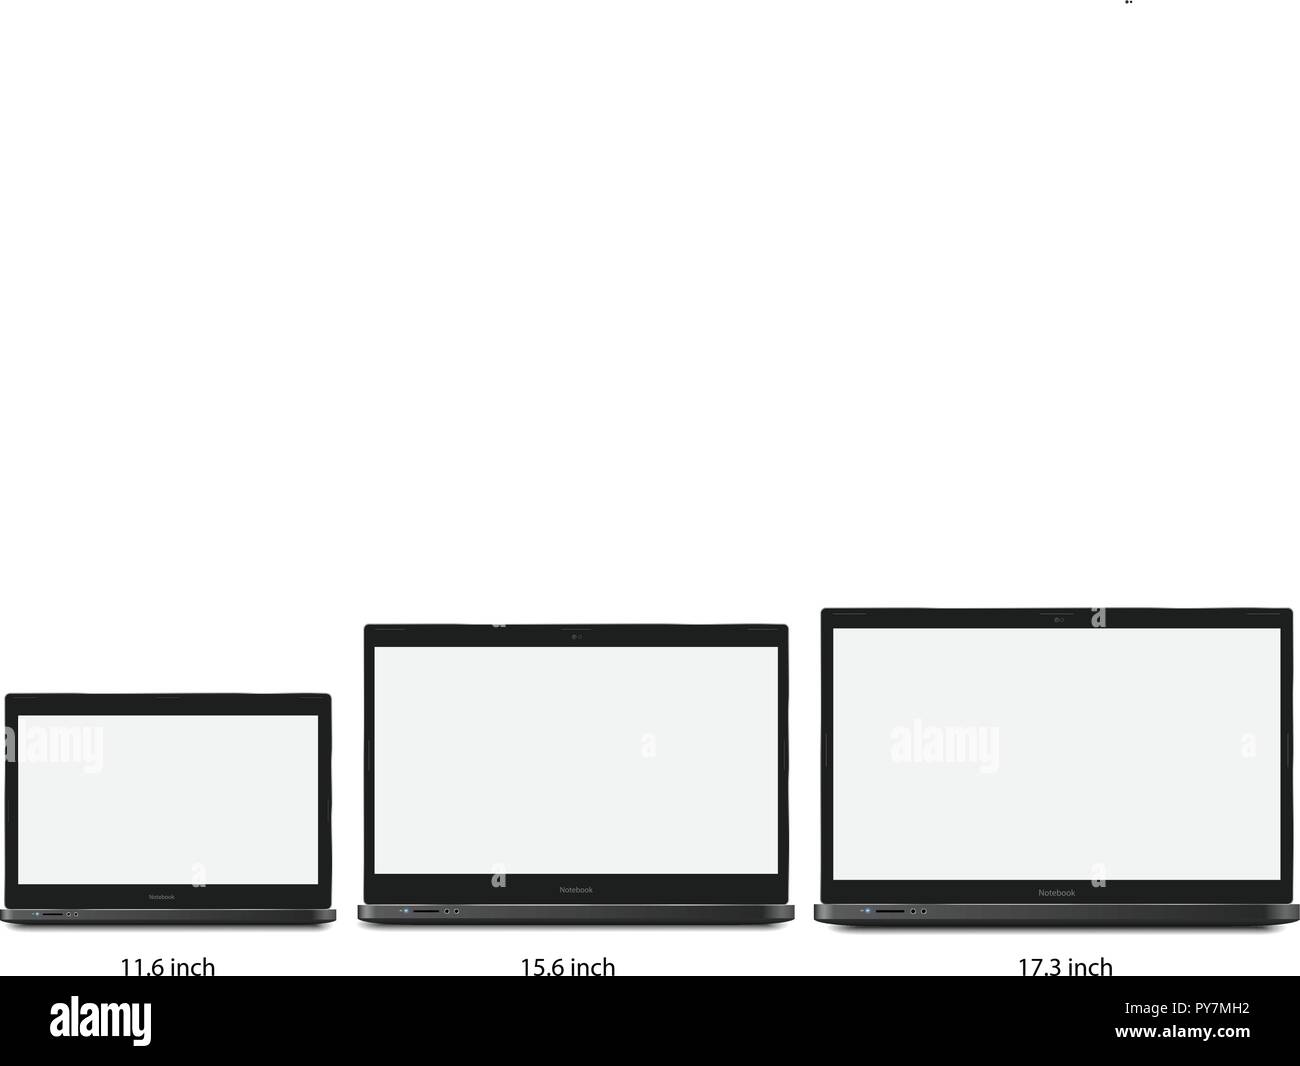 Notebook Laptop Template - Stock Image